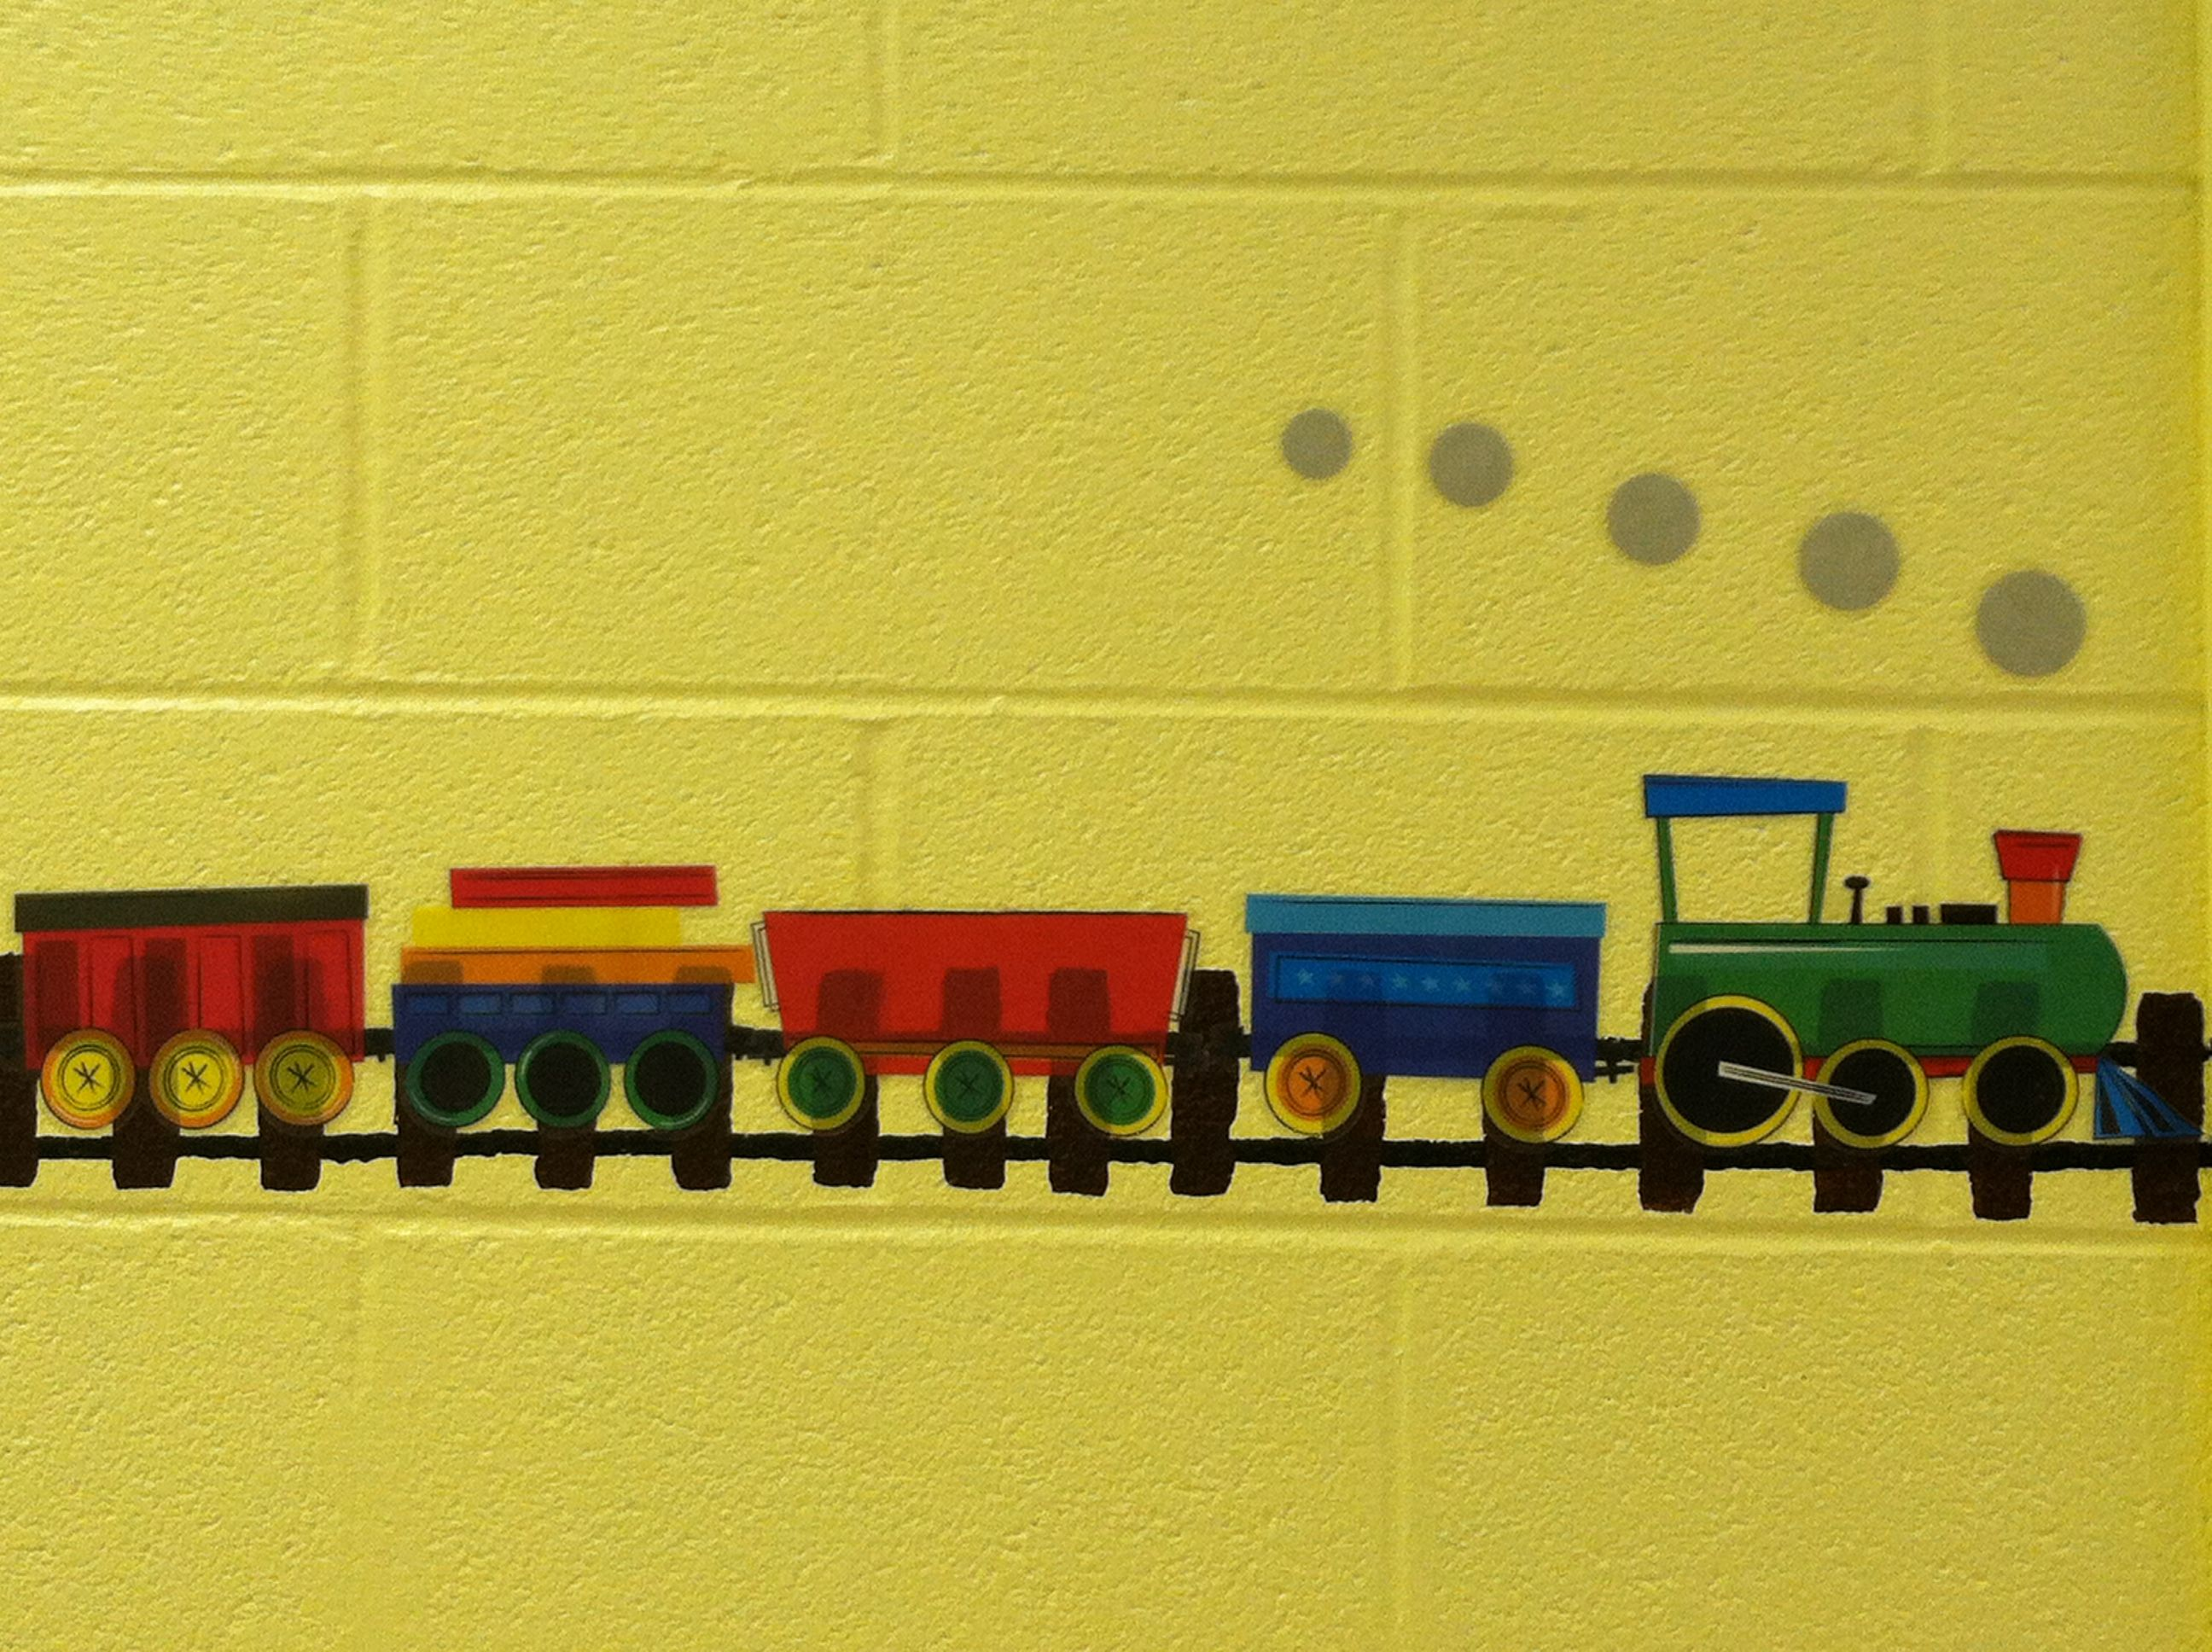 Train wall stickers from Target are super cute on the train track ...